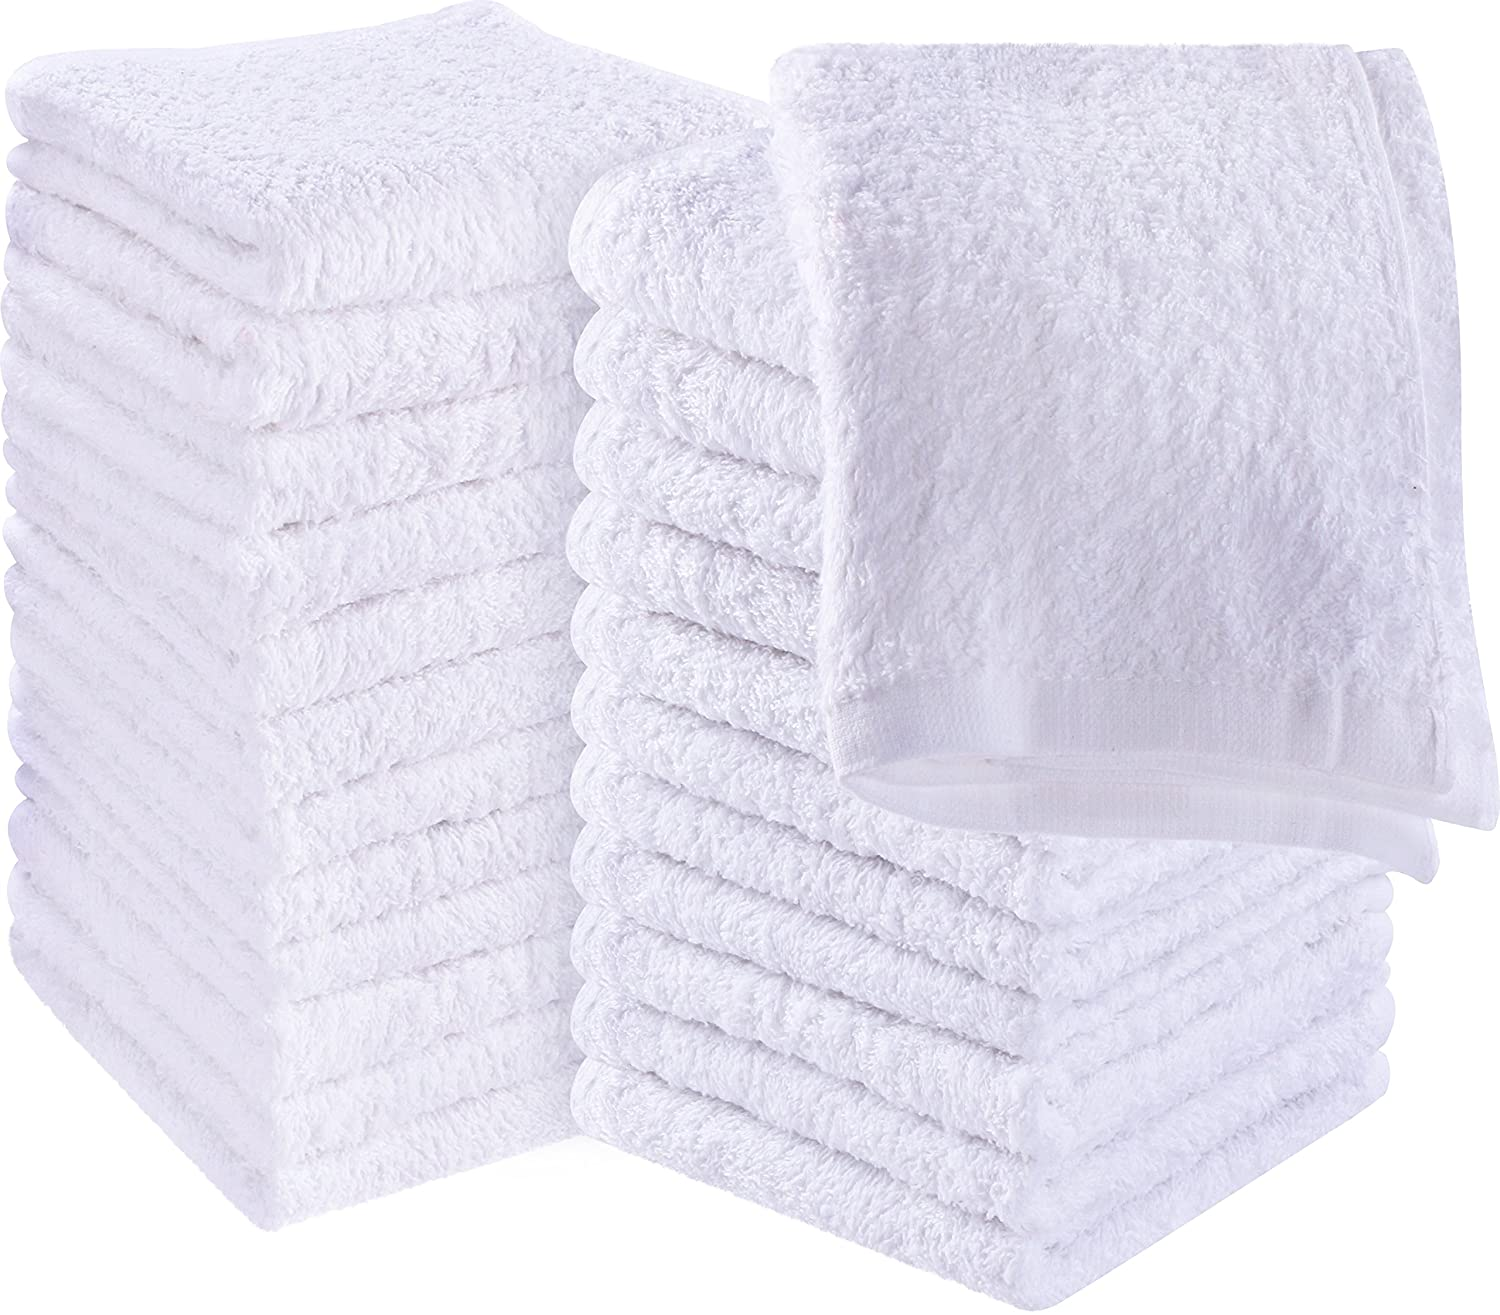 Utopia Towels Cotton Washcloths, 24 - Pack, White UT24WASHCLOTHWHITE